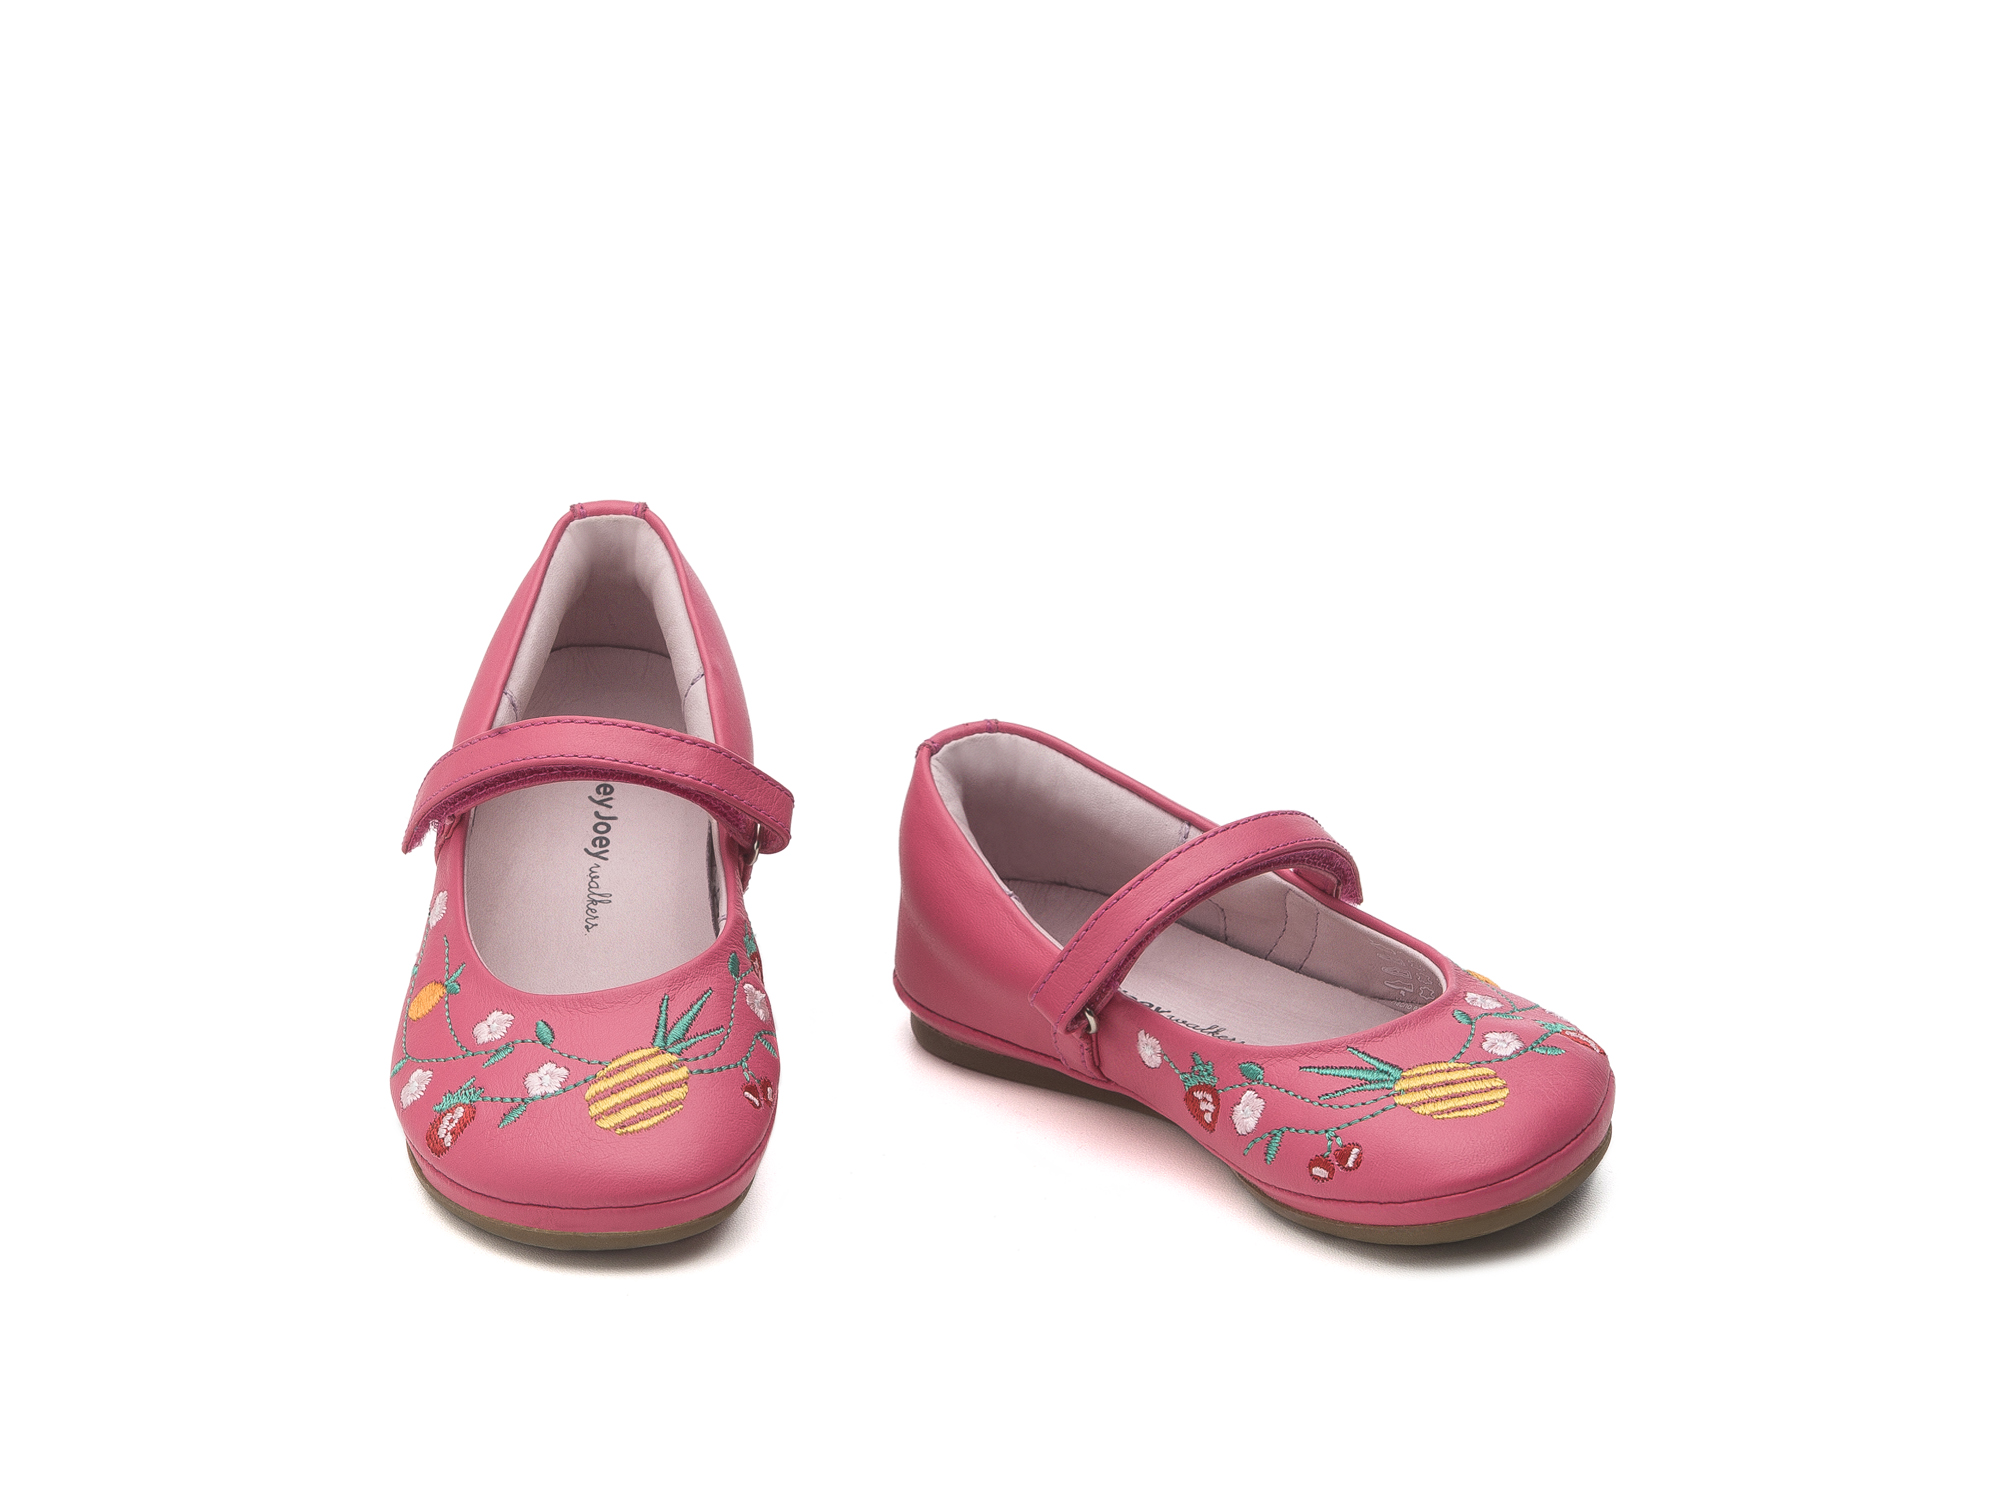 Mary Jane Little Twirl Garden Tutti Frutti Toddler for ages 2 to 4 years - 2